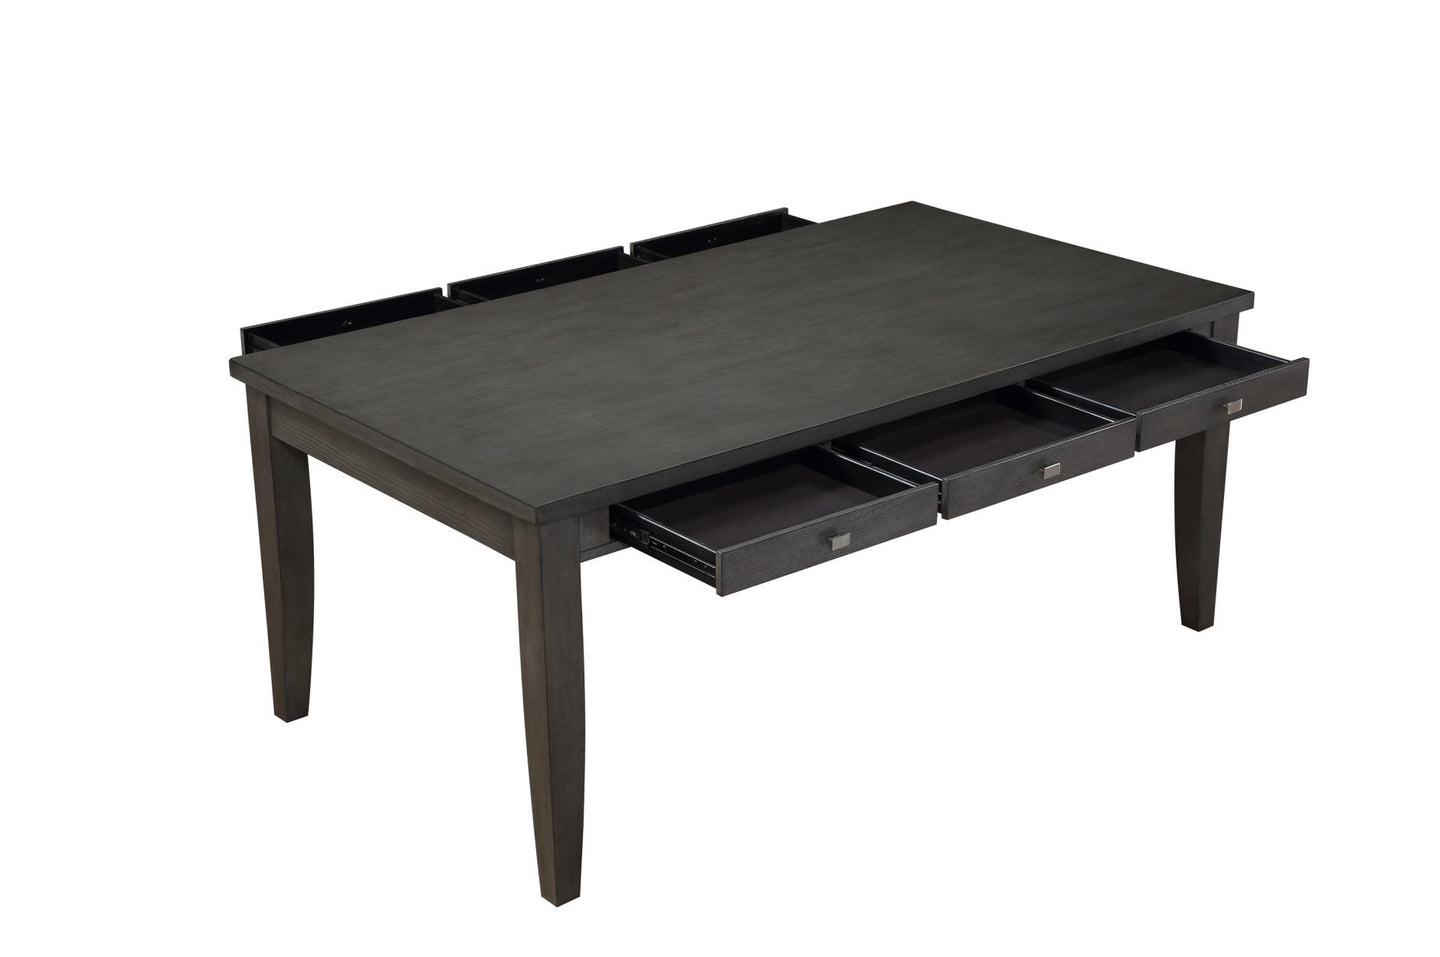 Homelegance Baresford Gray Wood Finish Dining Table